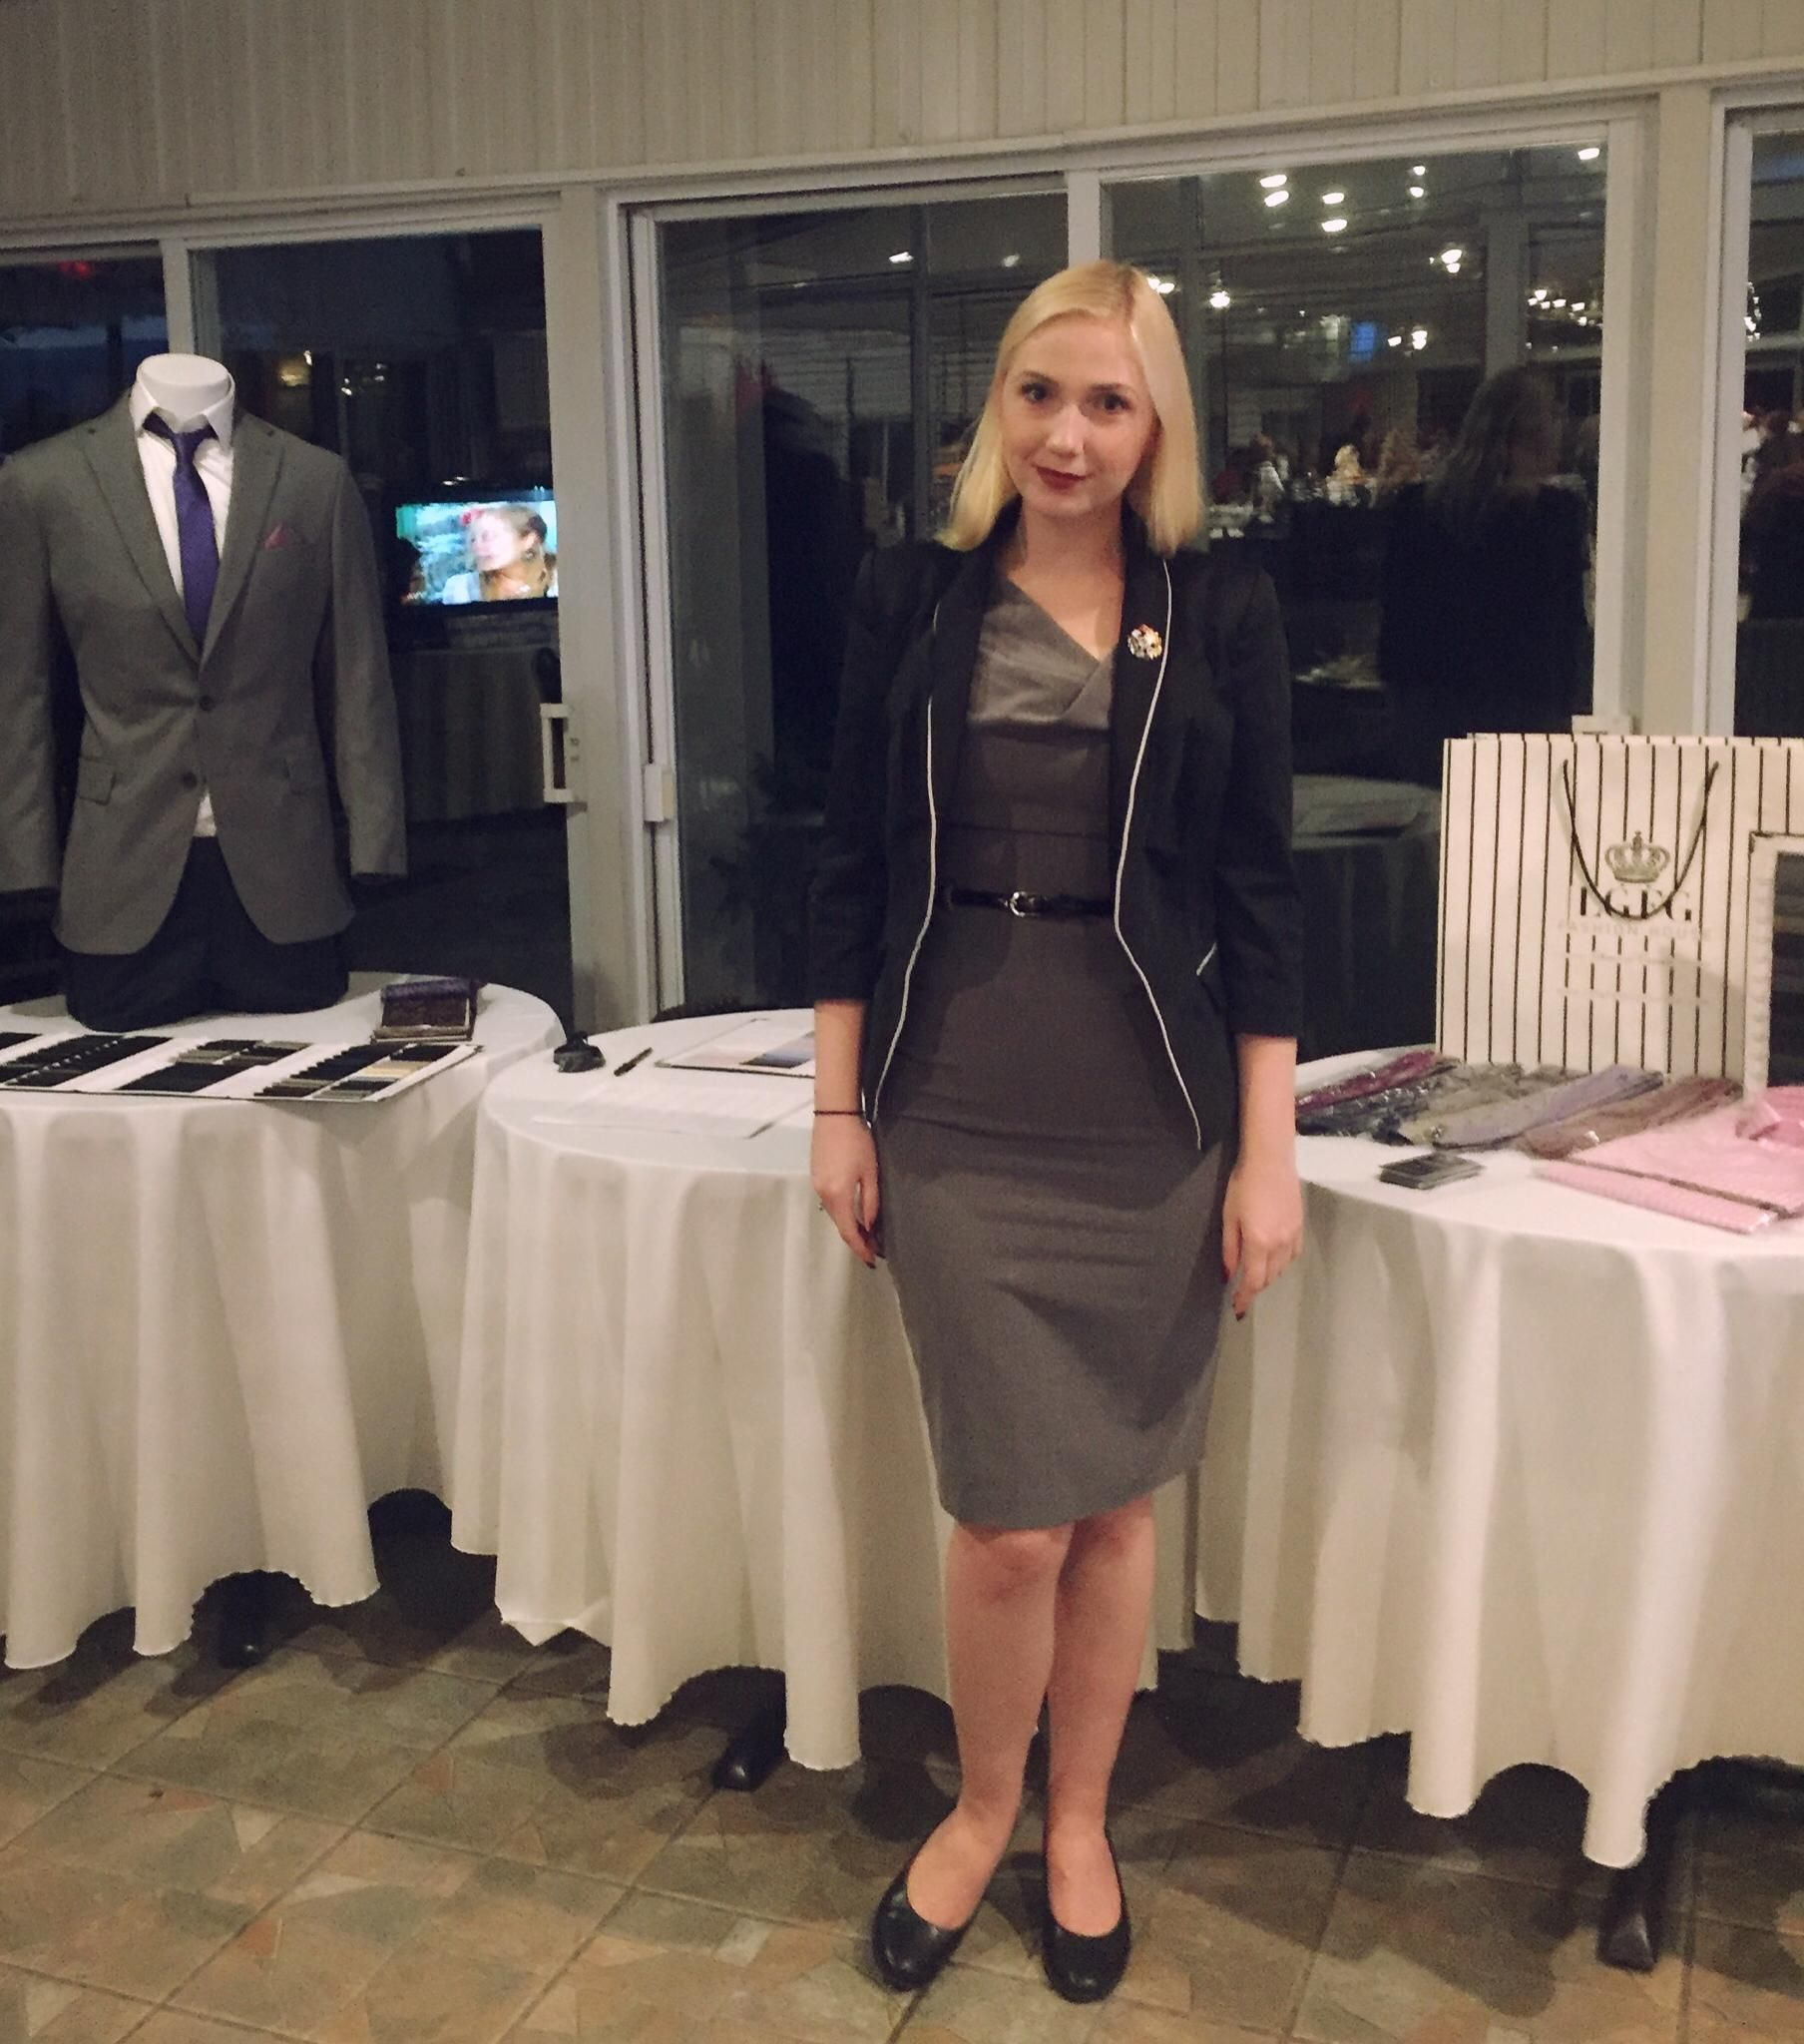 LGFG Fashion House executive clothier Madeline Mason was in Quebec at Club  de Golf La Madeleine f11a9b13f26d